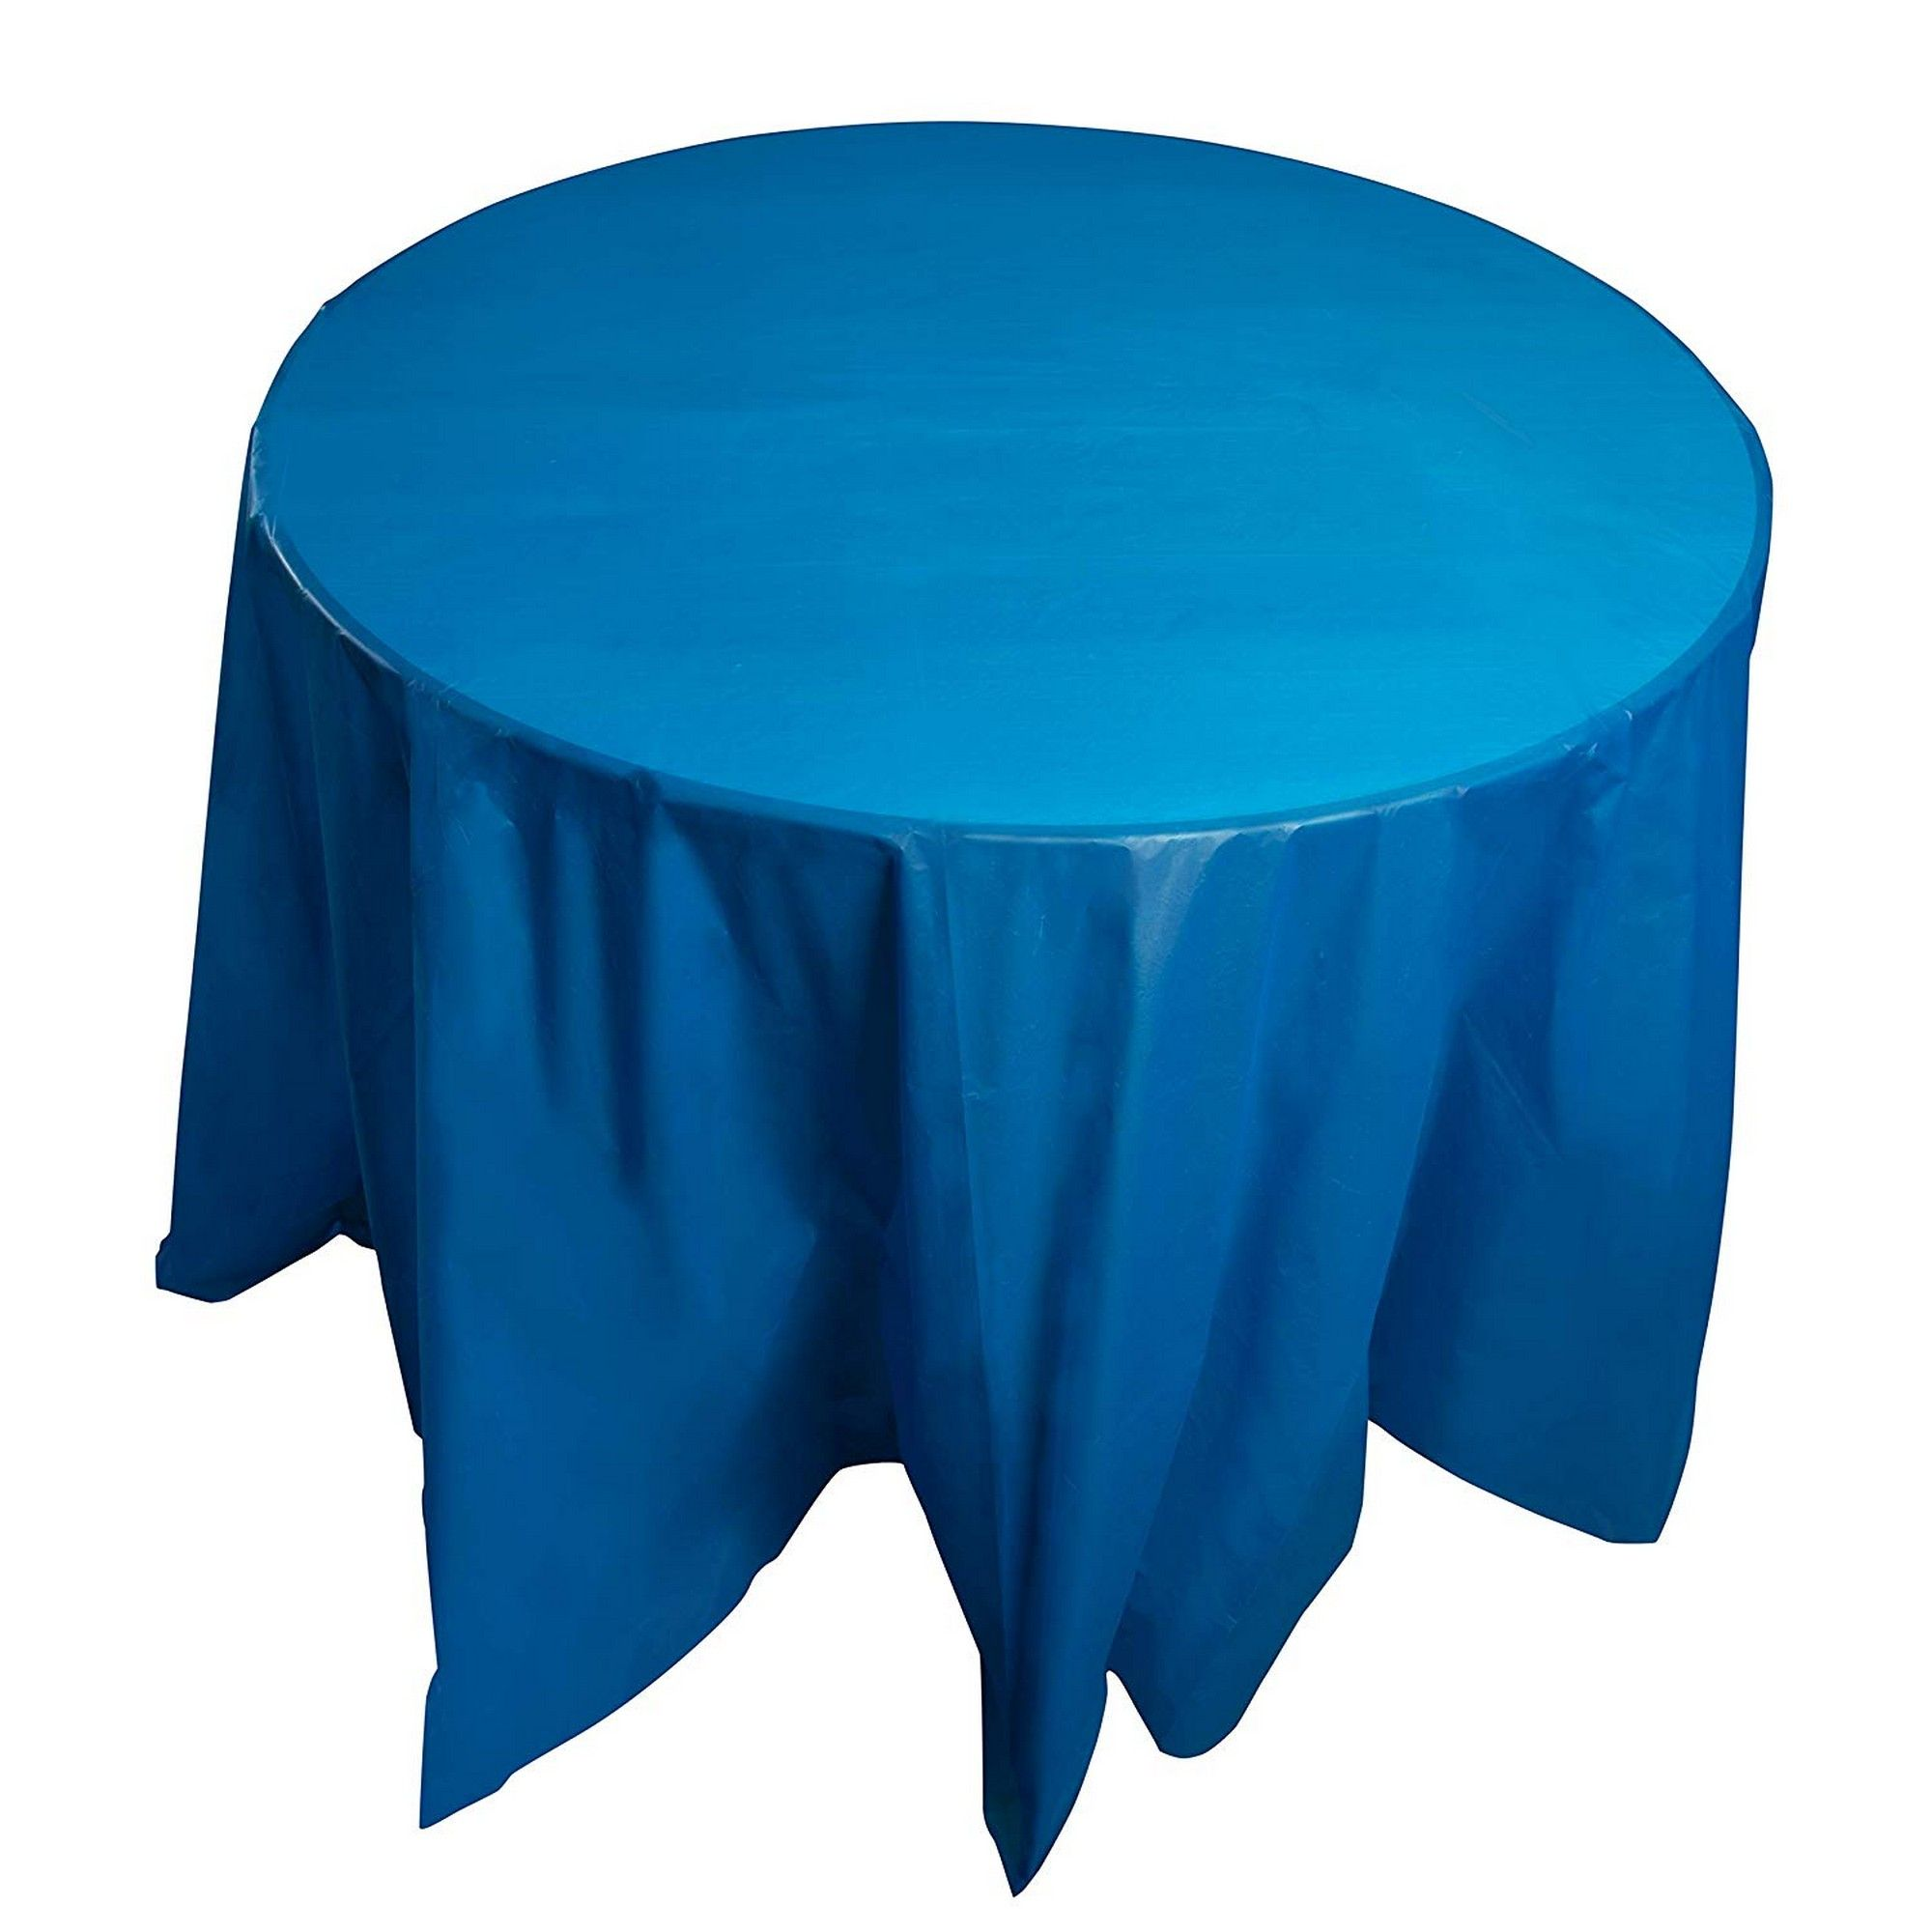 12 Pack Blue Plastic Tablecloth Round 84 Inch Disposable Table Cover Fits Up To 72 Inch Round Tables Solid Blue Color Indoor Outdoor Party Supplies Walmart Com Walmart Com